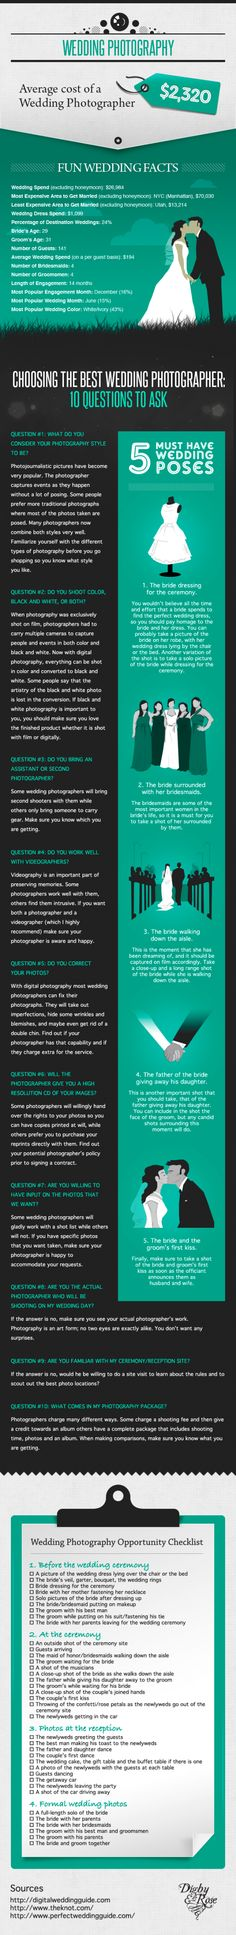 Complete Guide to Choosing a Wedding Photographer #infographic